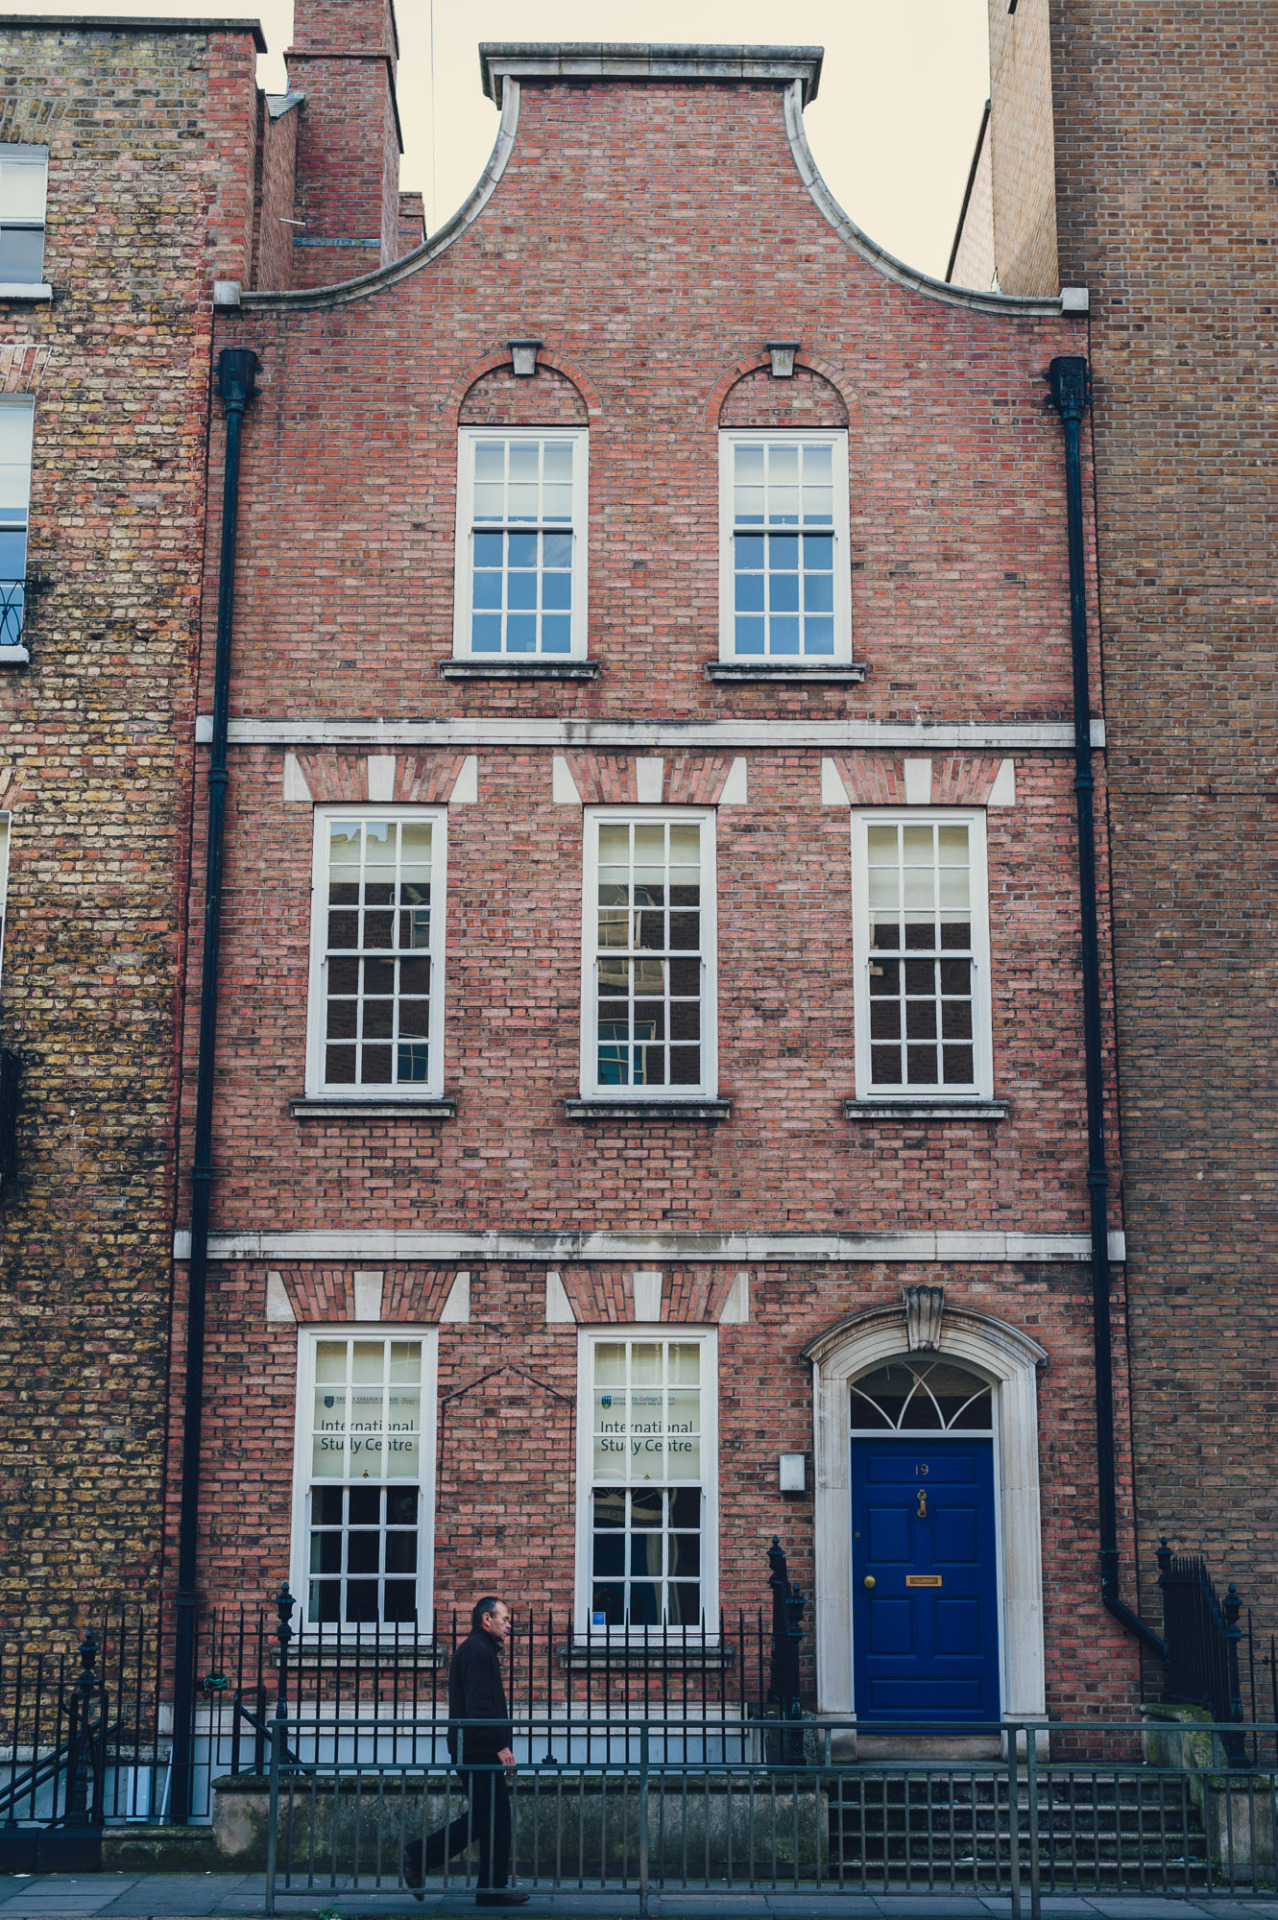 I love this Beautiful old narrow building on Leeson Street. There are a lot of these narrow little buildings around Dublin if you keep an eye out for them. There's another even narrower one on the quays between the ha'penny bridge and O'Connell bridge